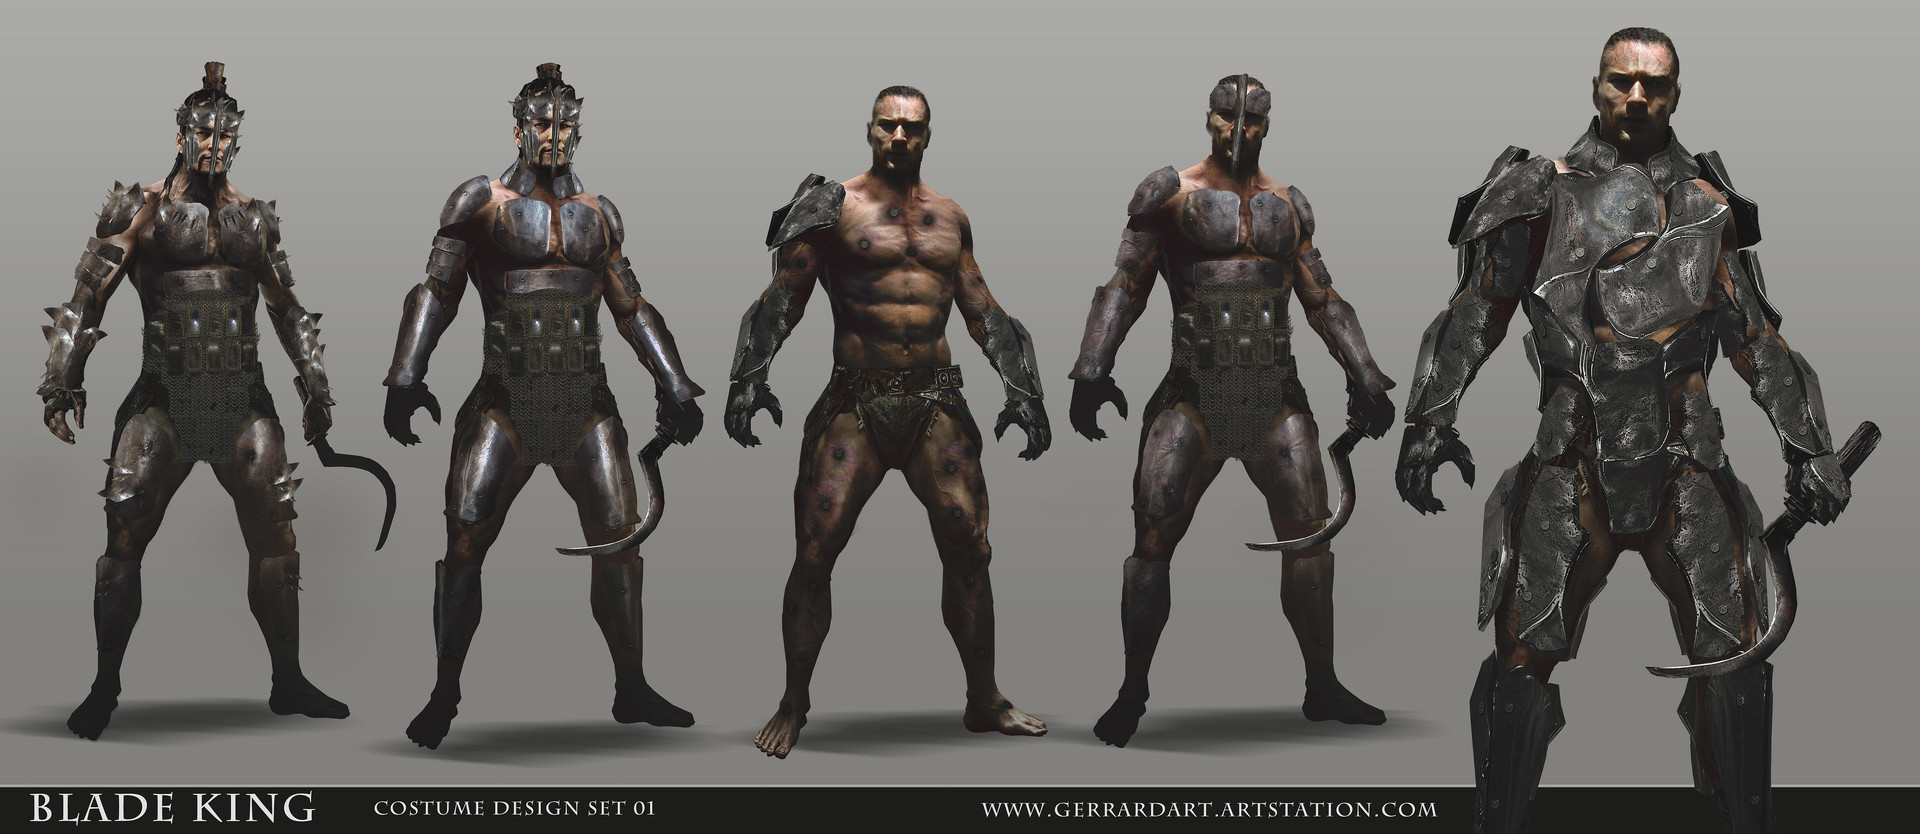 Paul gerrard costumedesign 01